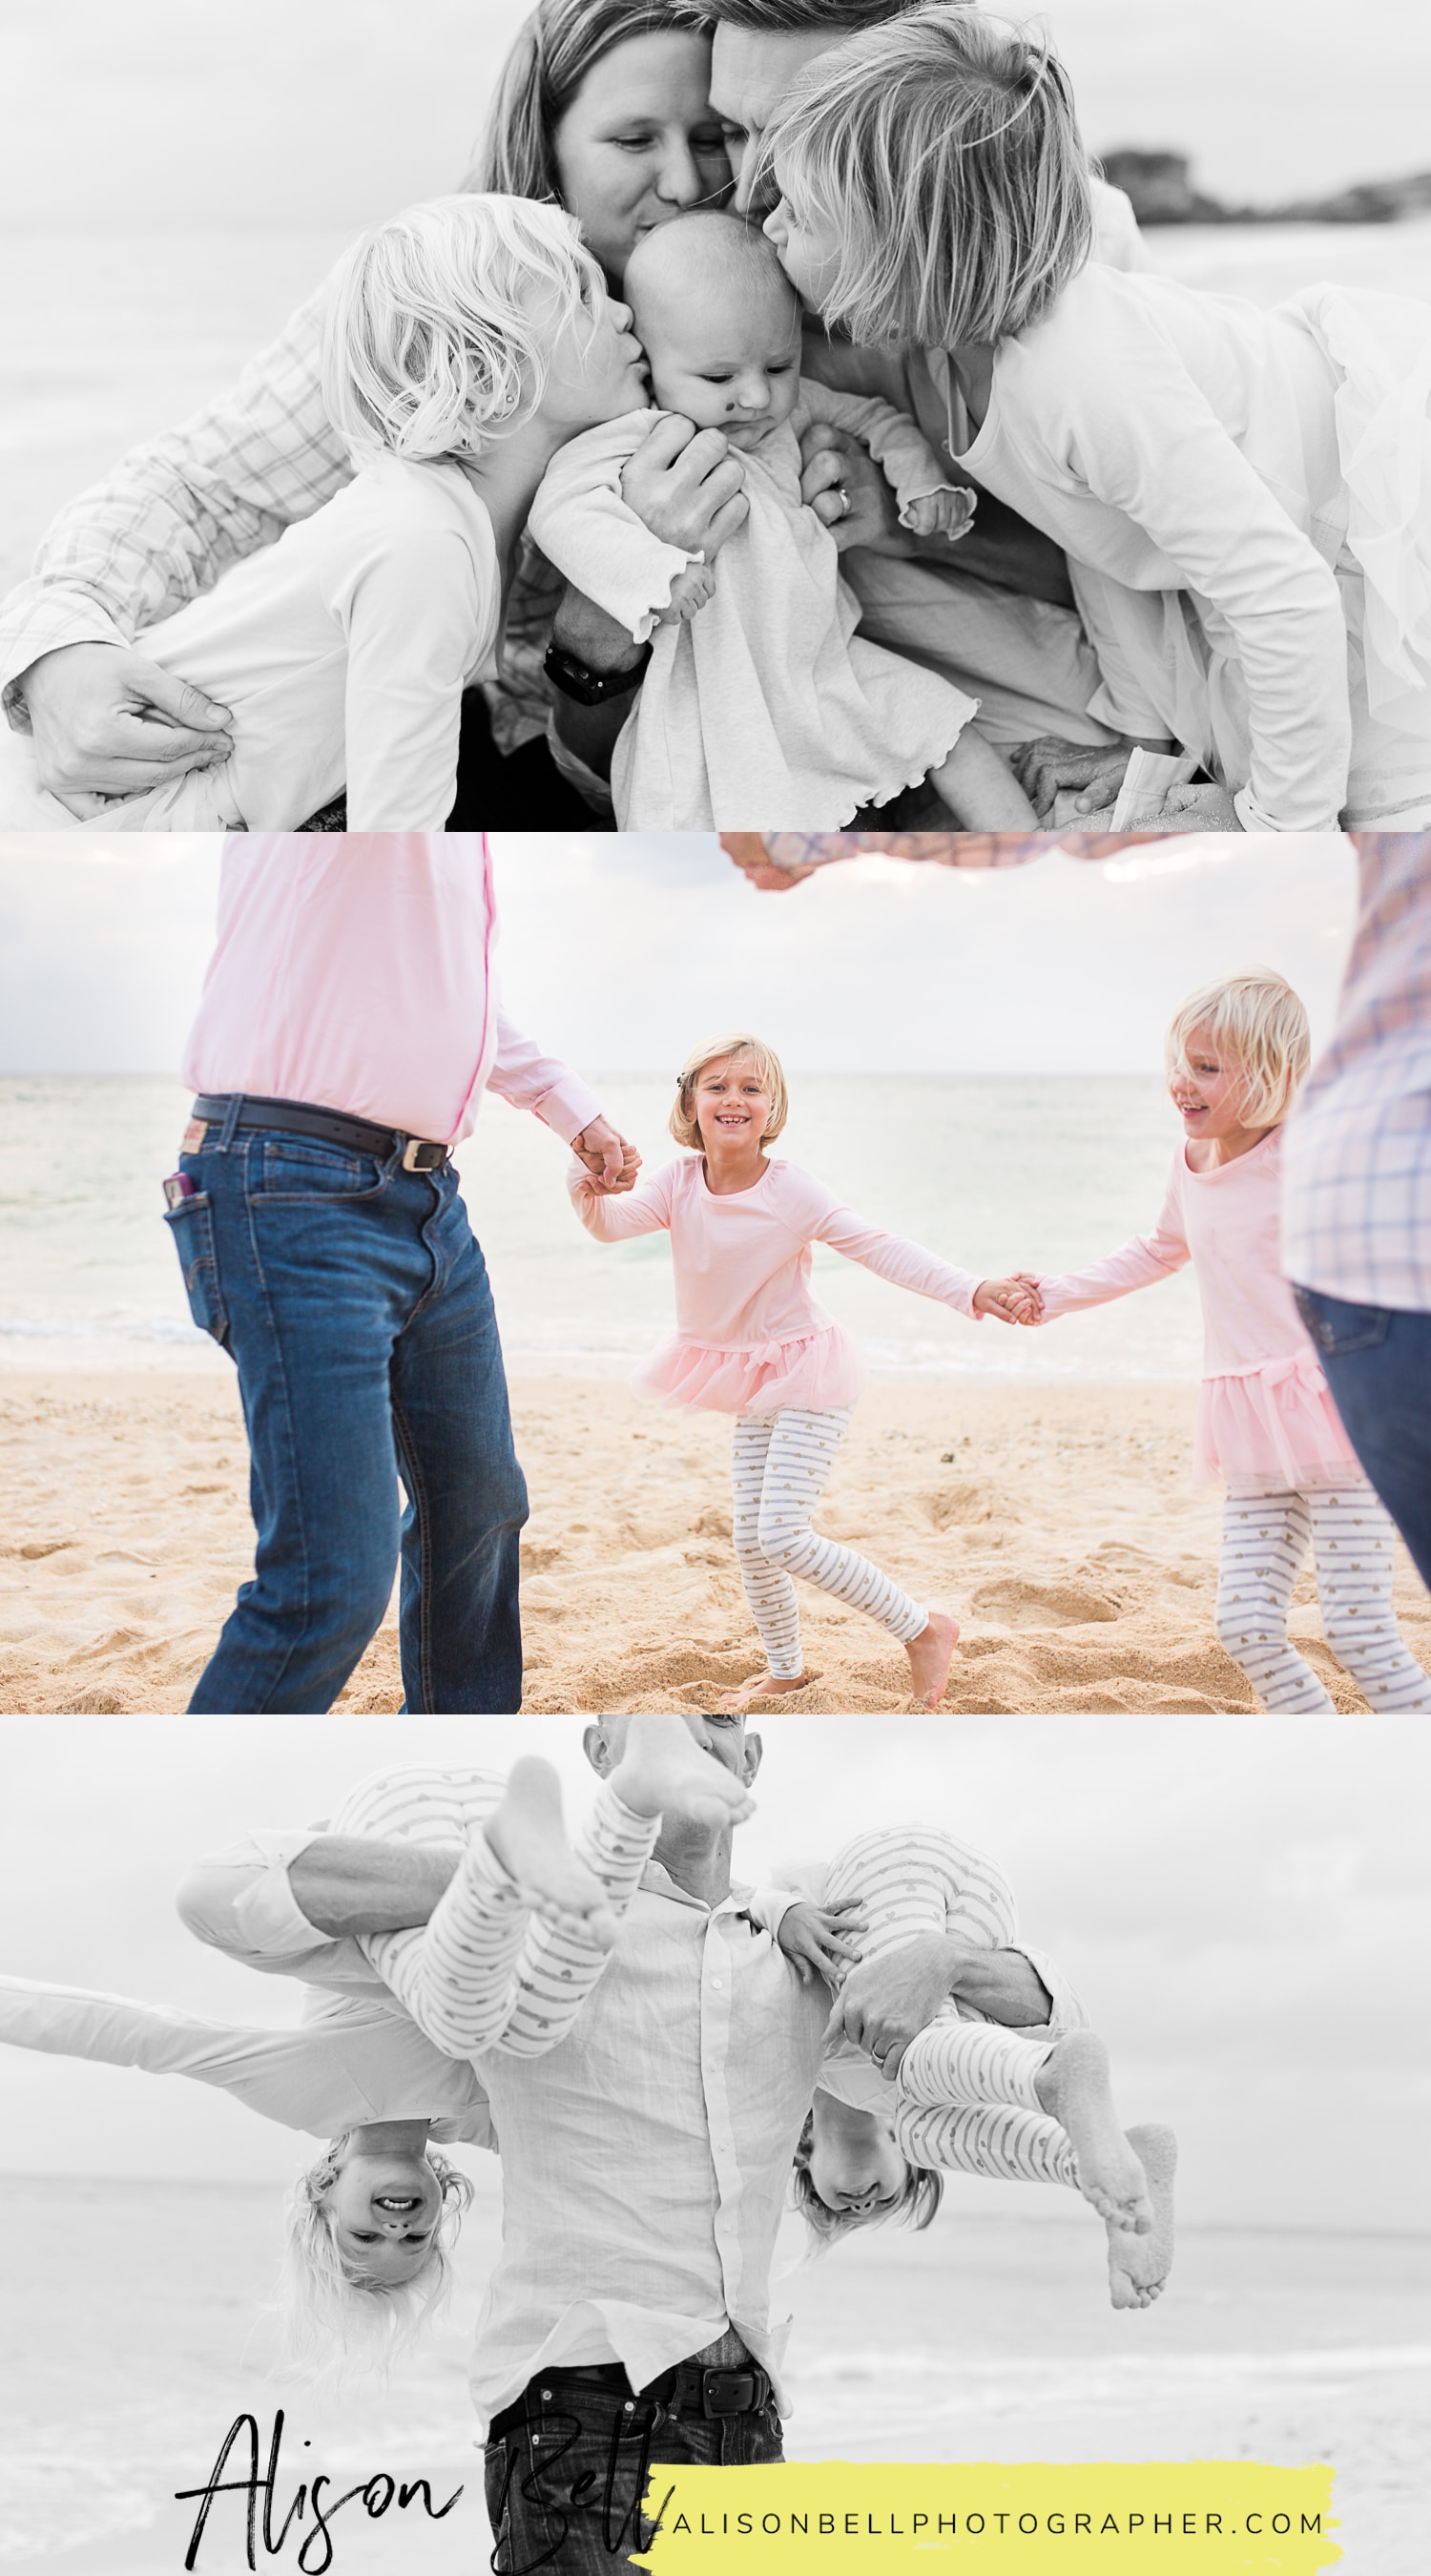 Baby and child family photography with the grandparents! On the beach in Okinawa, Japan by Alison Bell, Photographer.